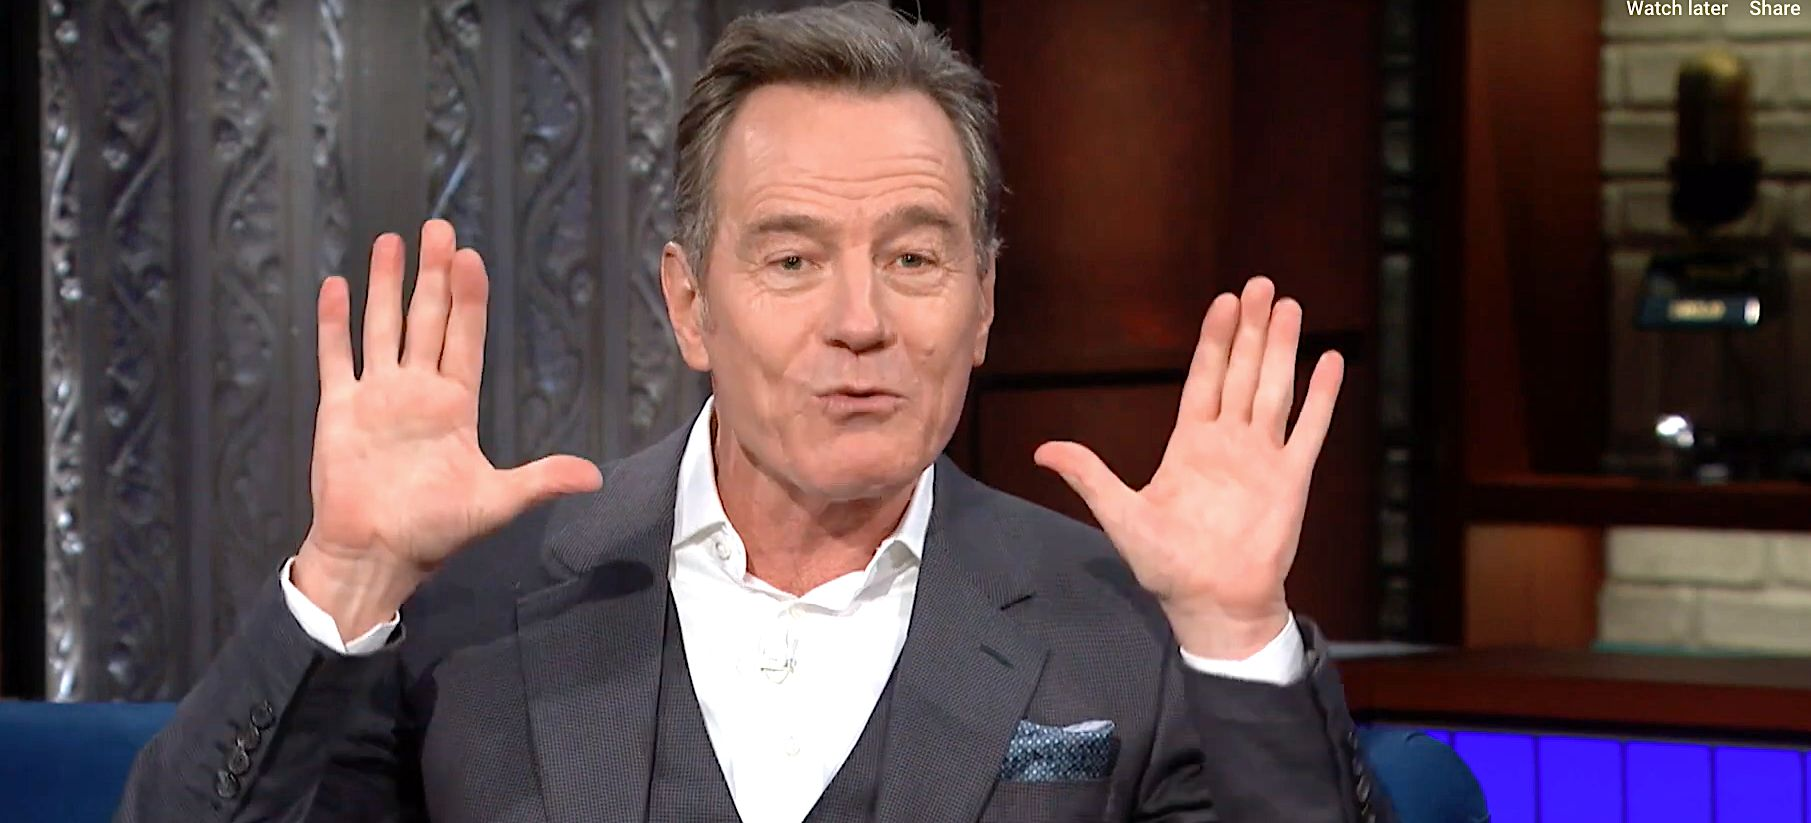 Bryan Cranston Reveals The 3 Things Making Him 'Mad As Hell' In The Trump Era